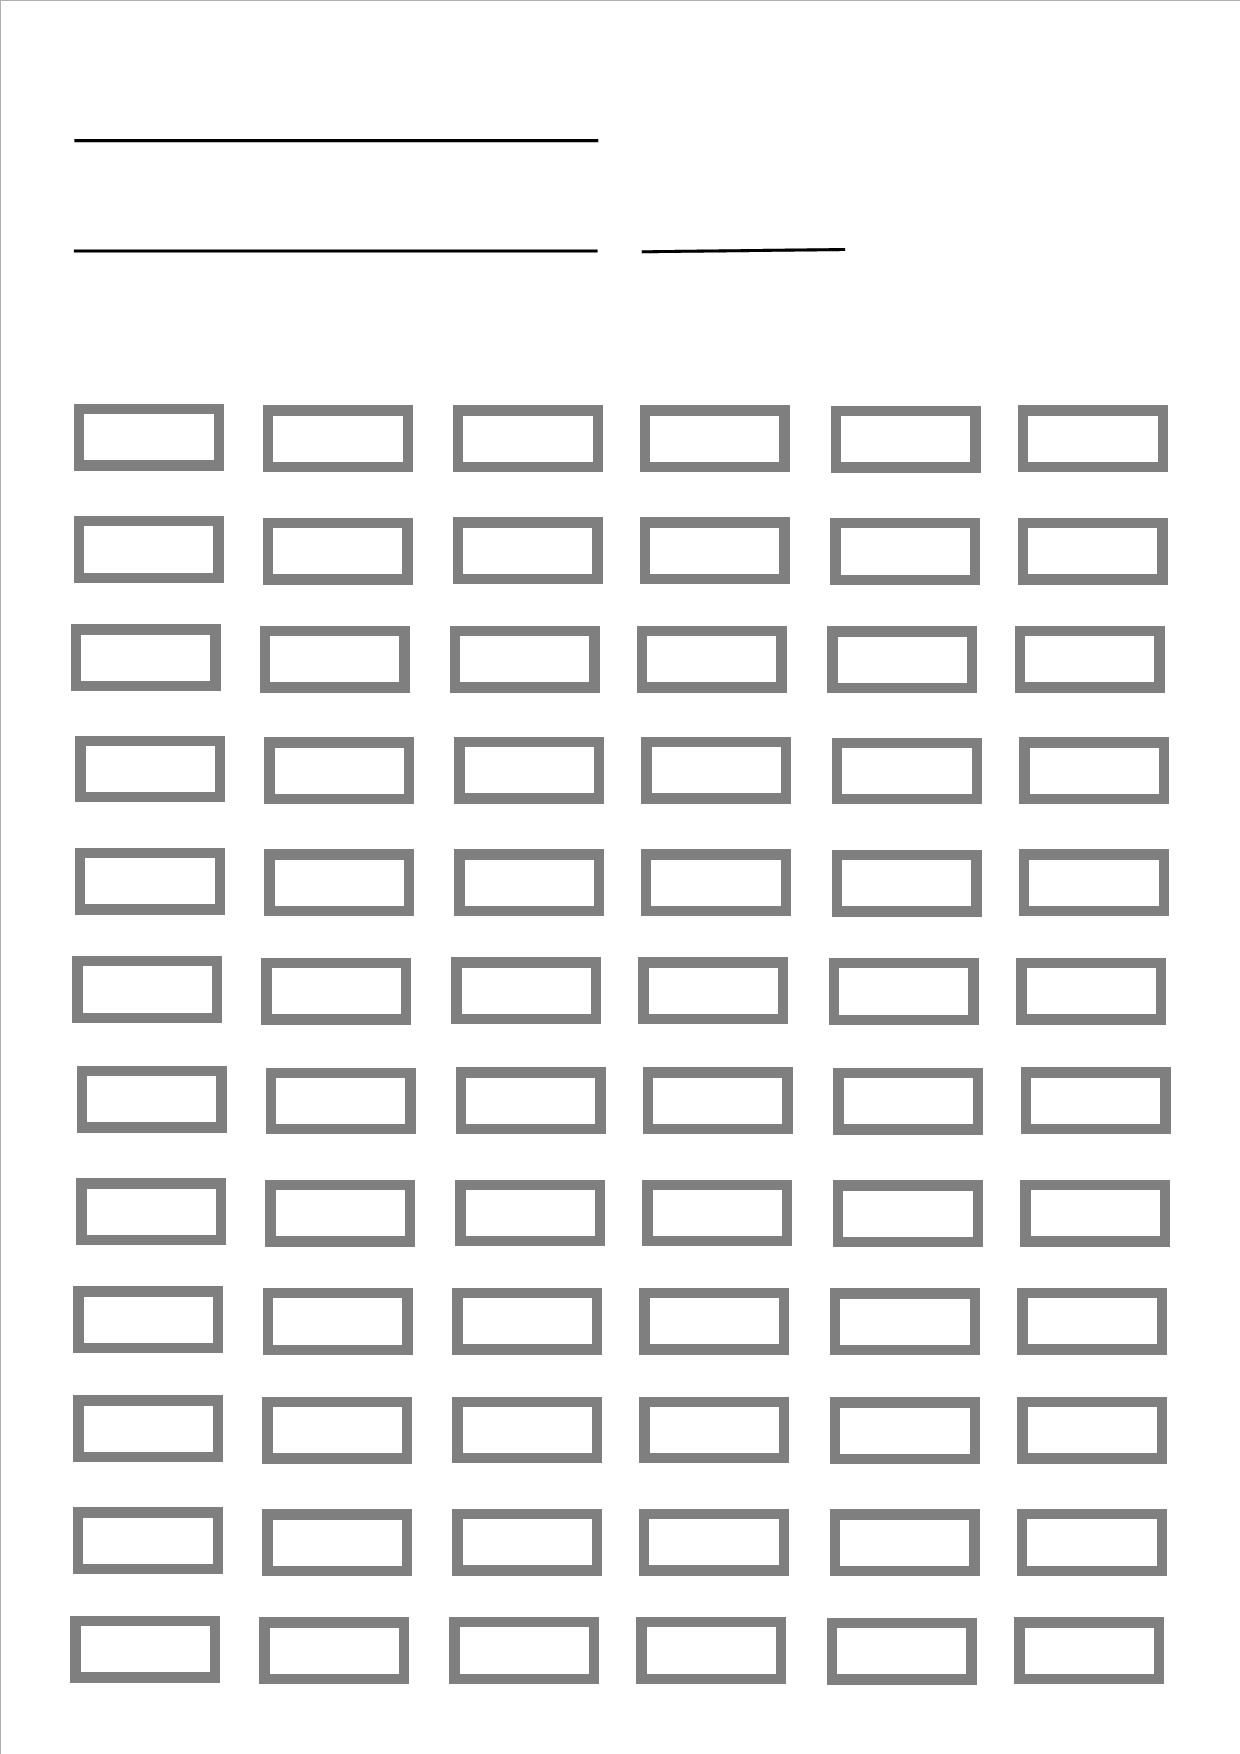 blank pencil chart for up to 72 pencils. prints A4 size